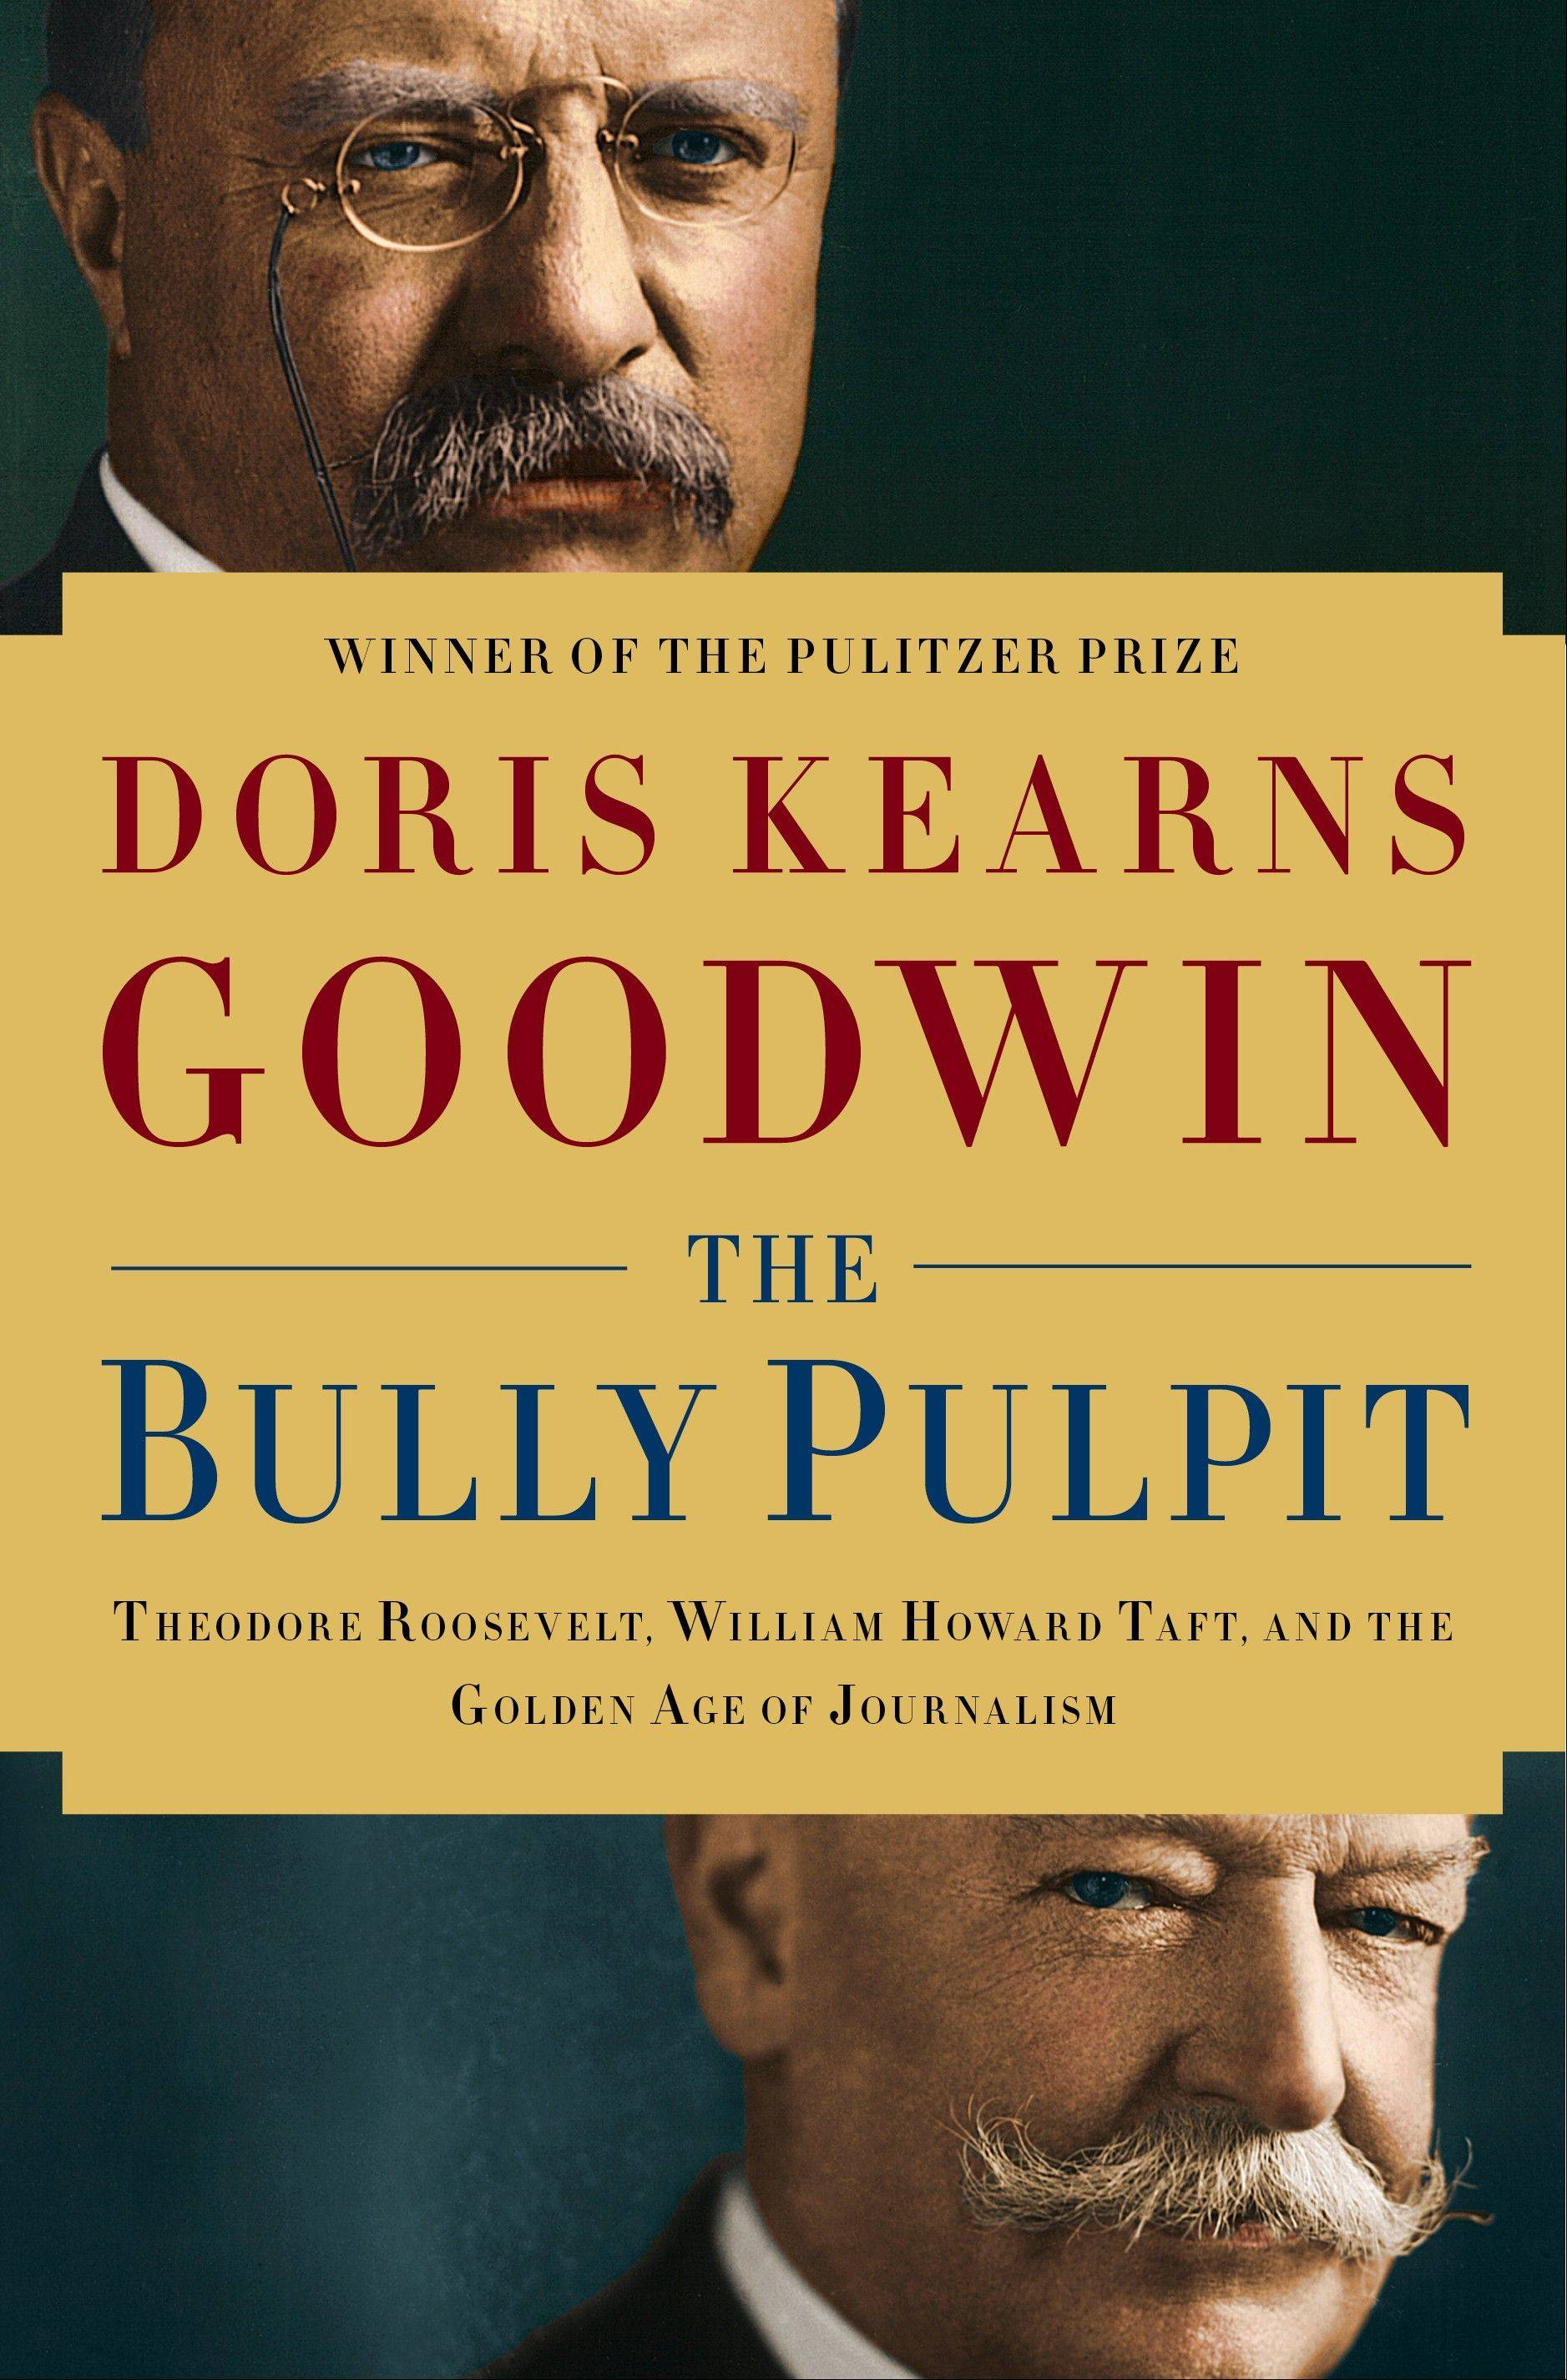 """The Bully Pulpit: Theodore Roosevelt, William Howard Taft, and the Golden Age of Journalism"" by Doris Kearns Goodwin"